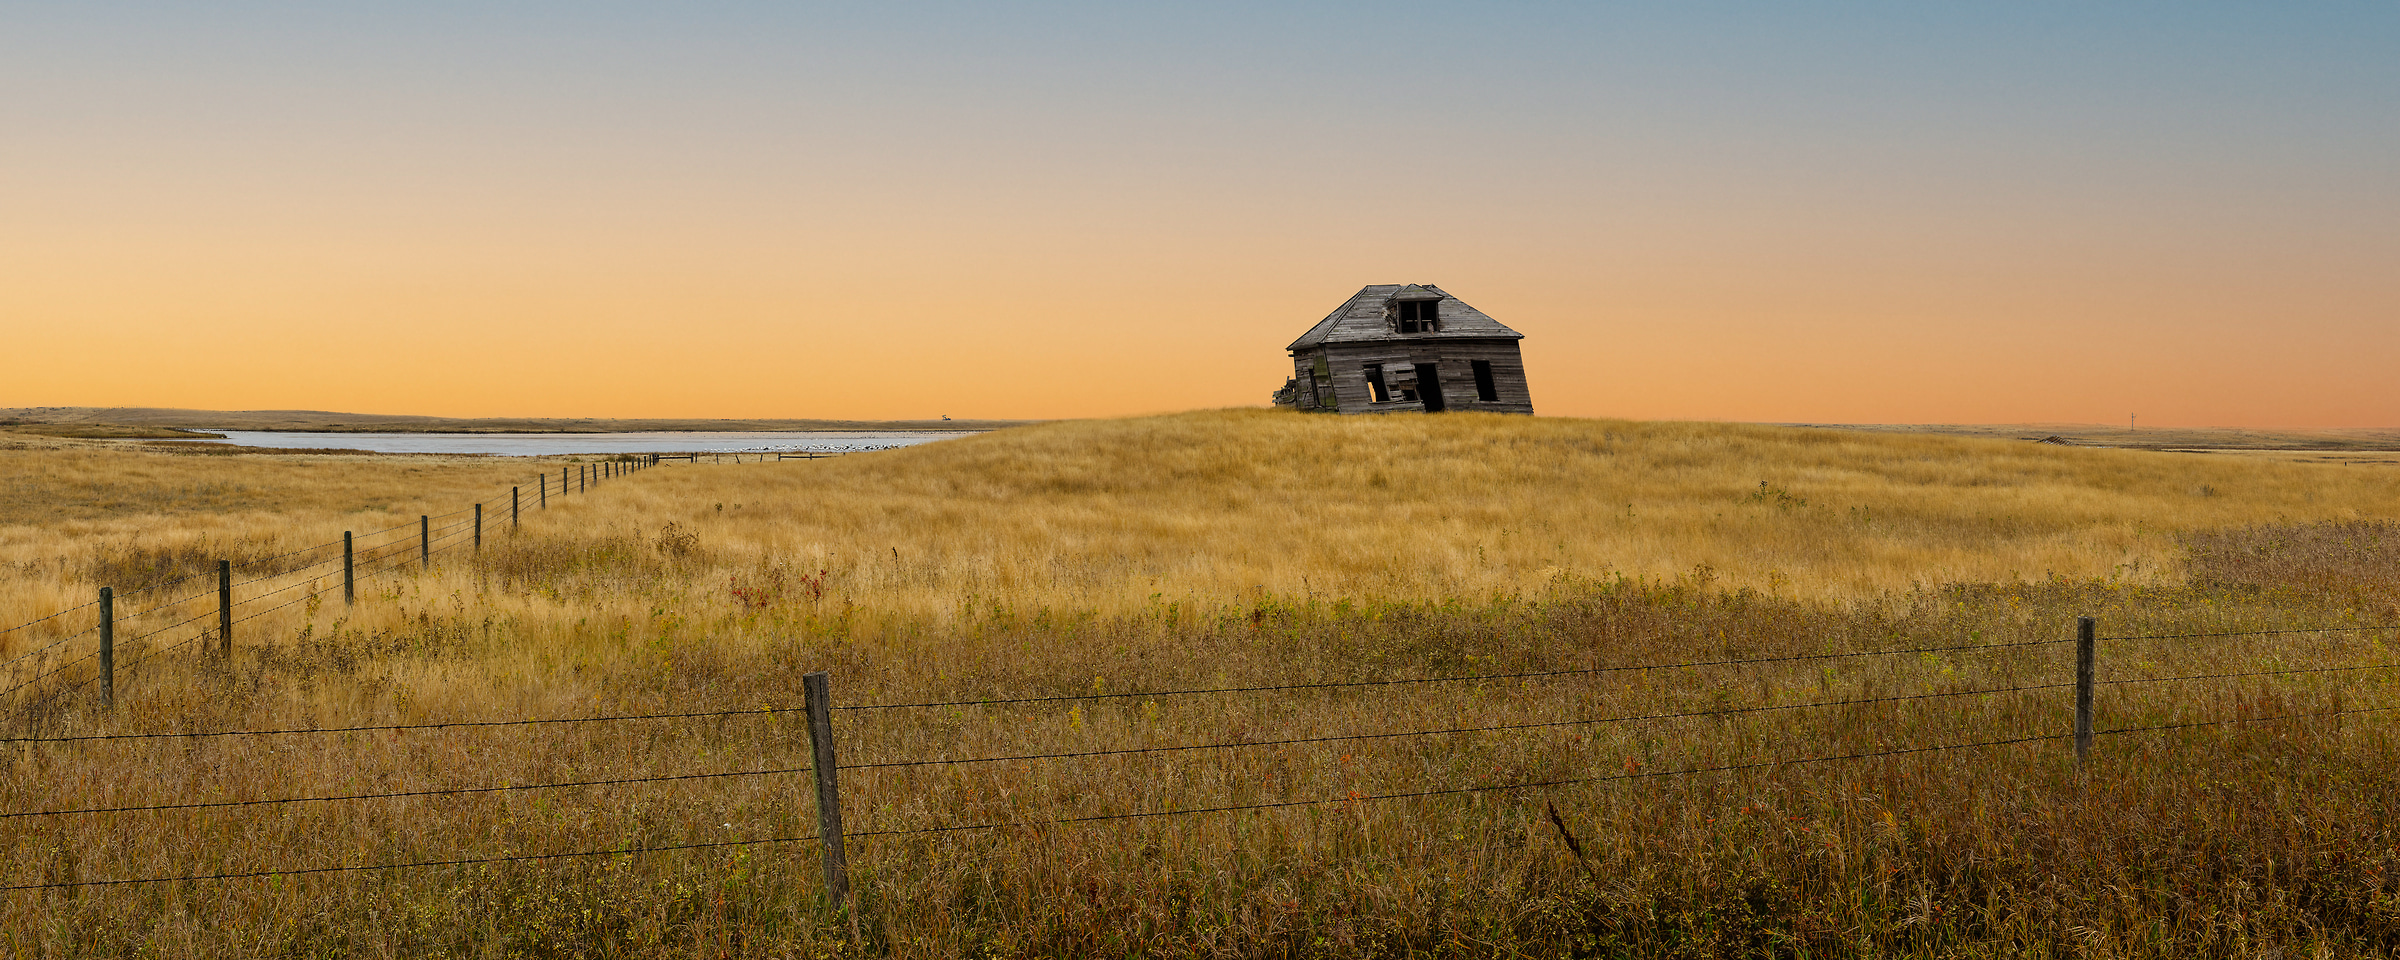 863 megapixels! A very high resolution, large-format VAST photo print of an abandoned house in a field at sunrise; landscape photograph created by Scott Dimond in Vulcan County, Alberta, Canada